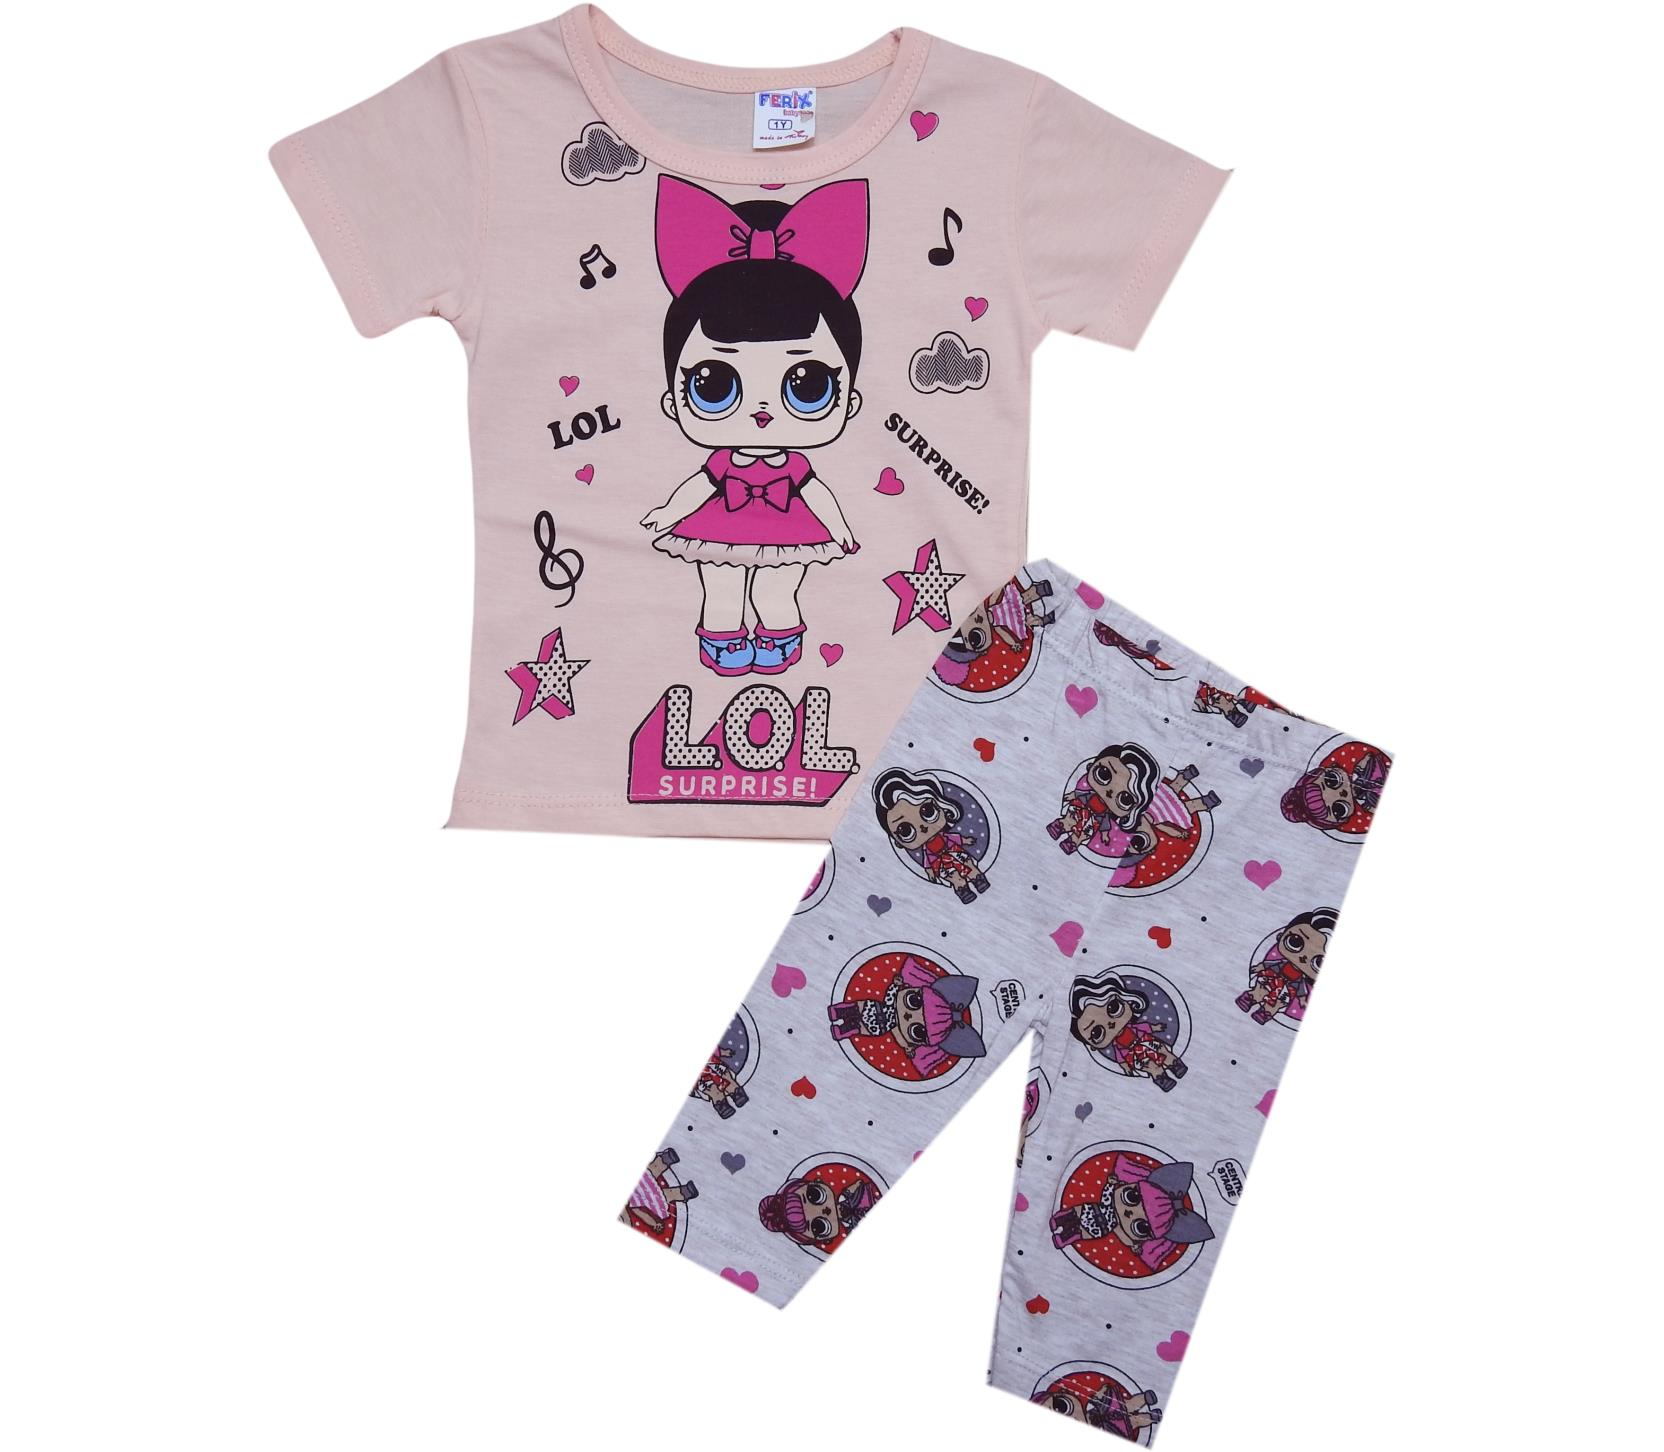 1907 wholesale children's summer suits-deuces, t-shirt with print girls + leggings for girls for 1-2-3 age